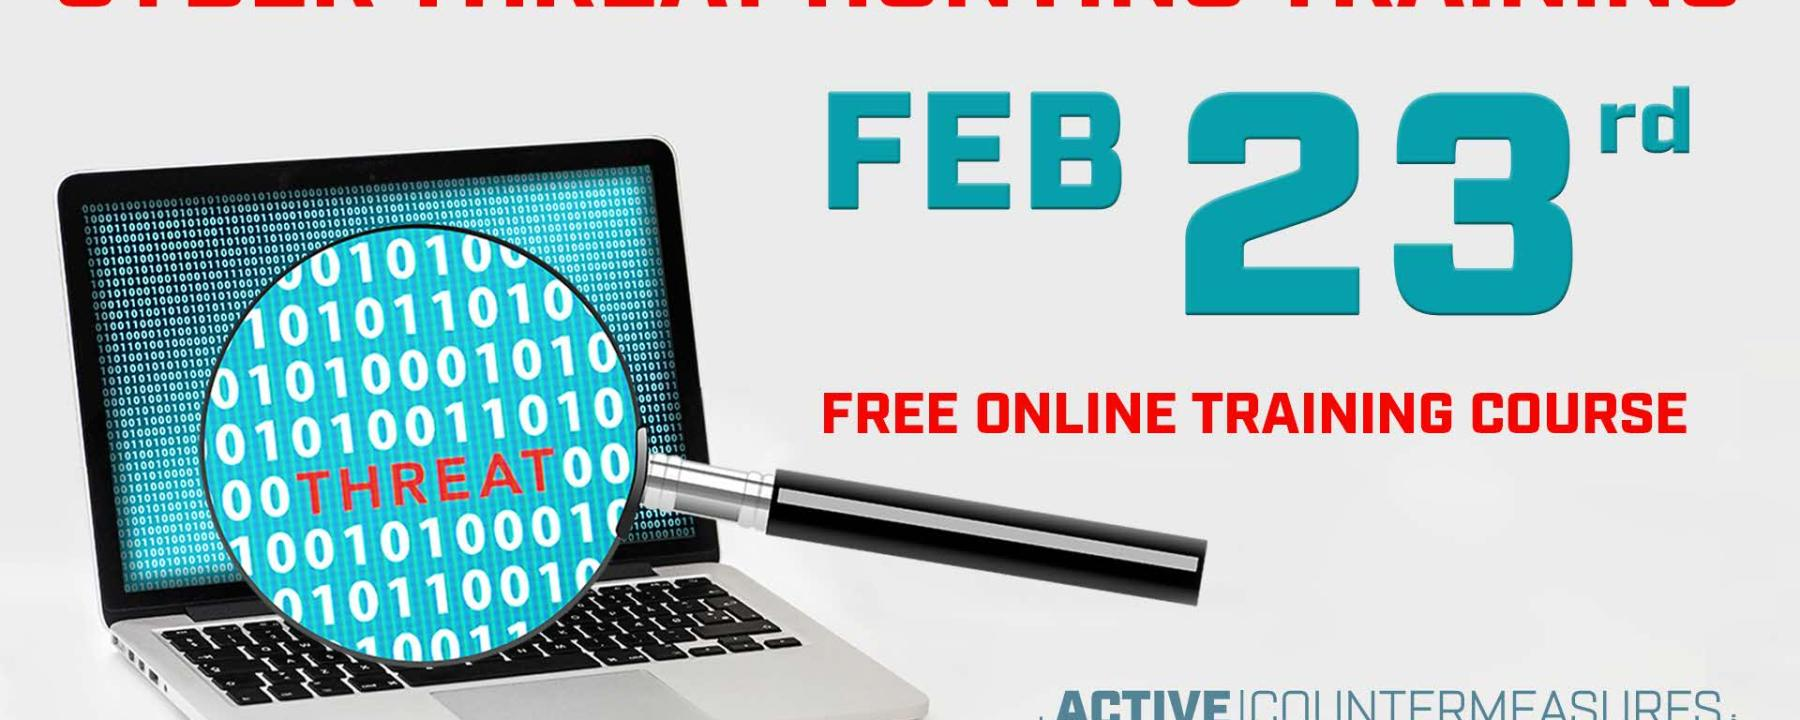 Curso gratuito de Cyber Threat Hunting Active Countermeasures